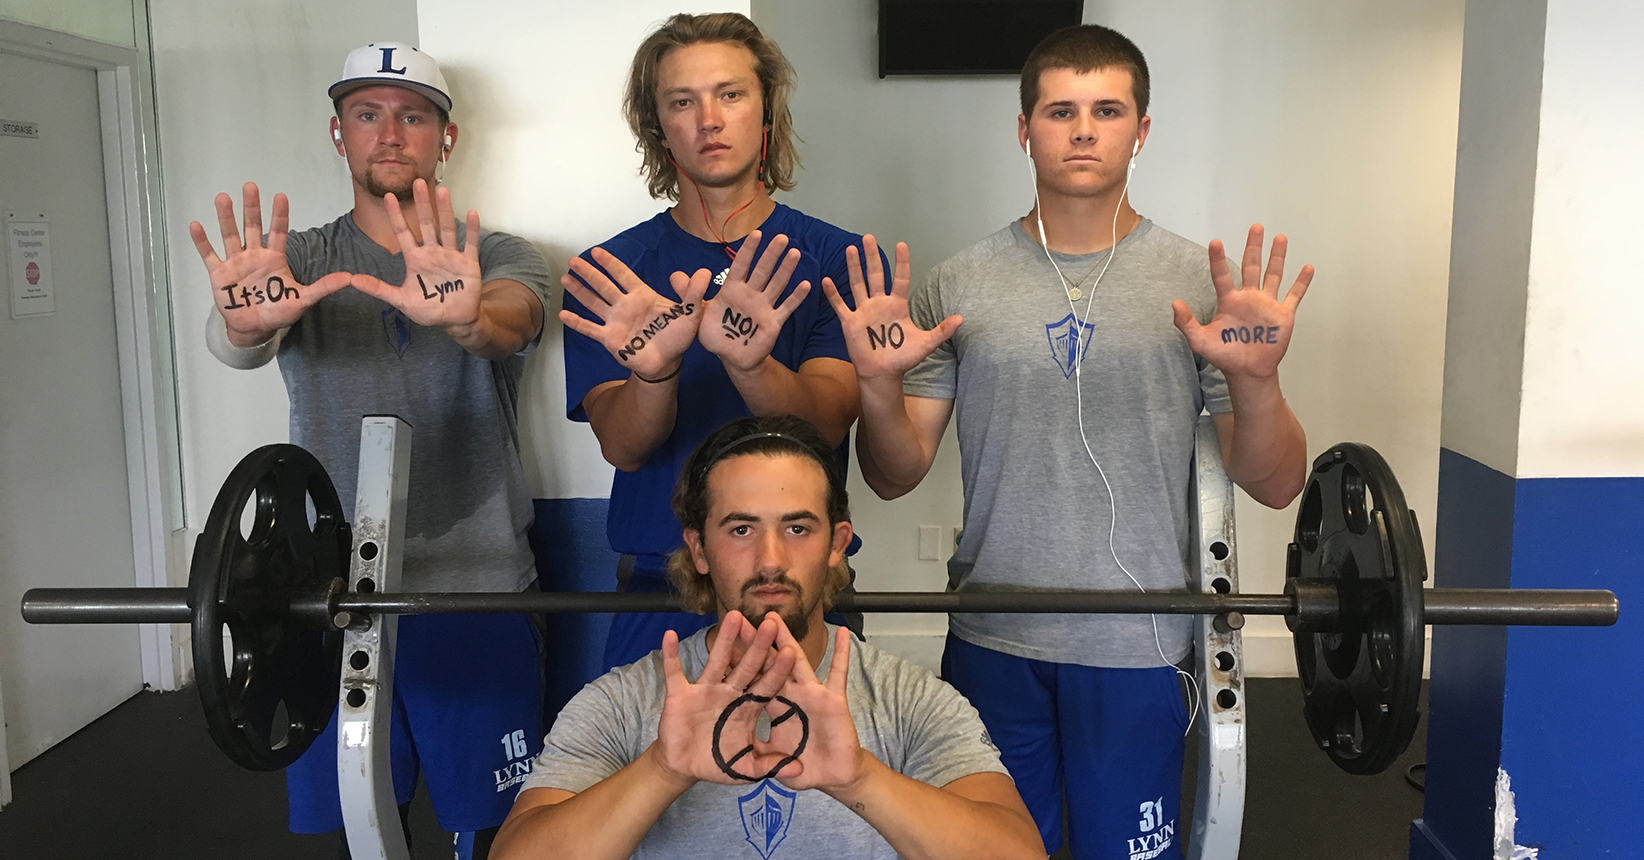 Lynn SAAC Recognizes Sexual Assault Awareness Month with 'It's On Us' Campaign